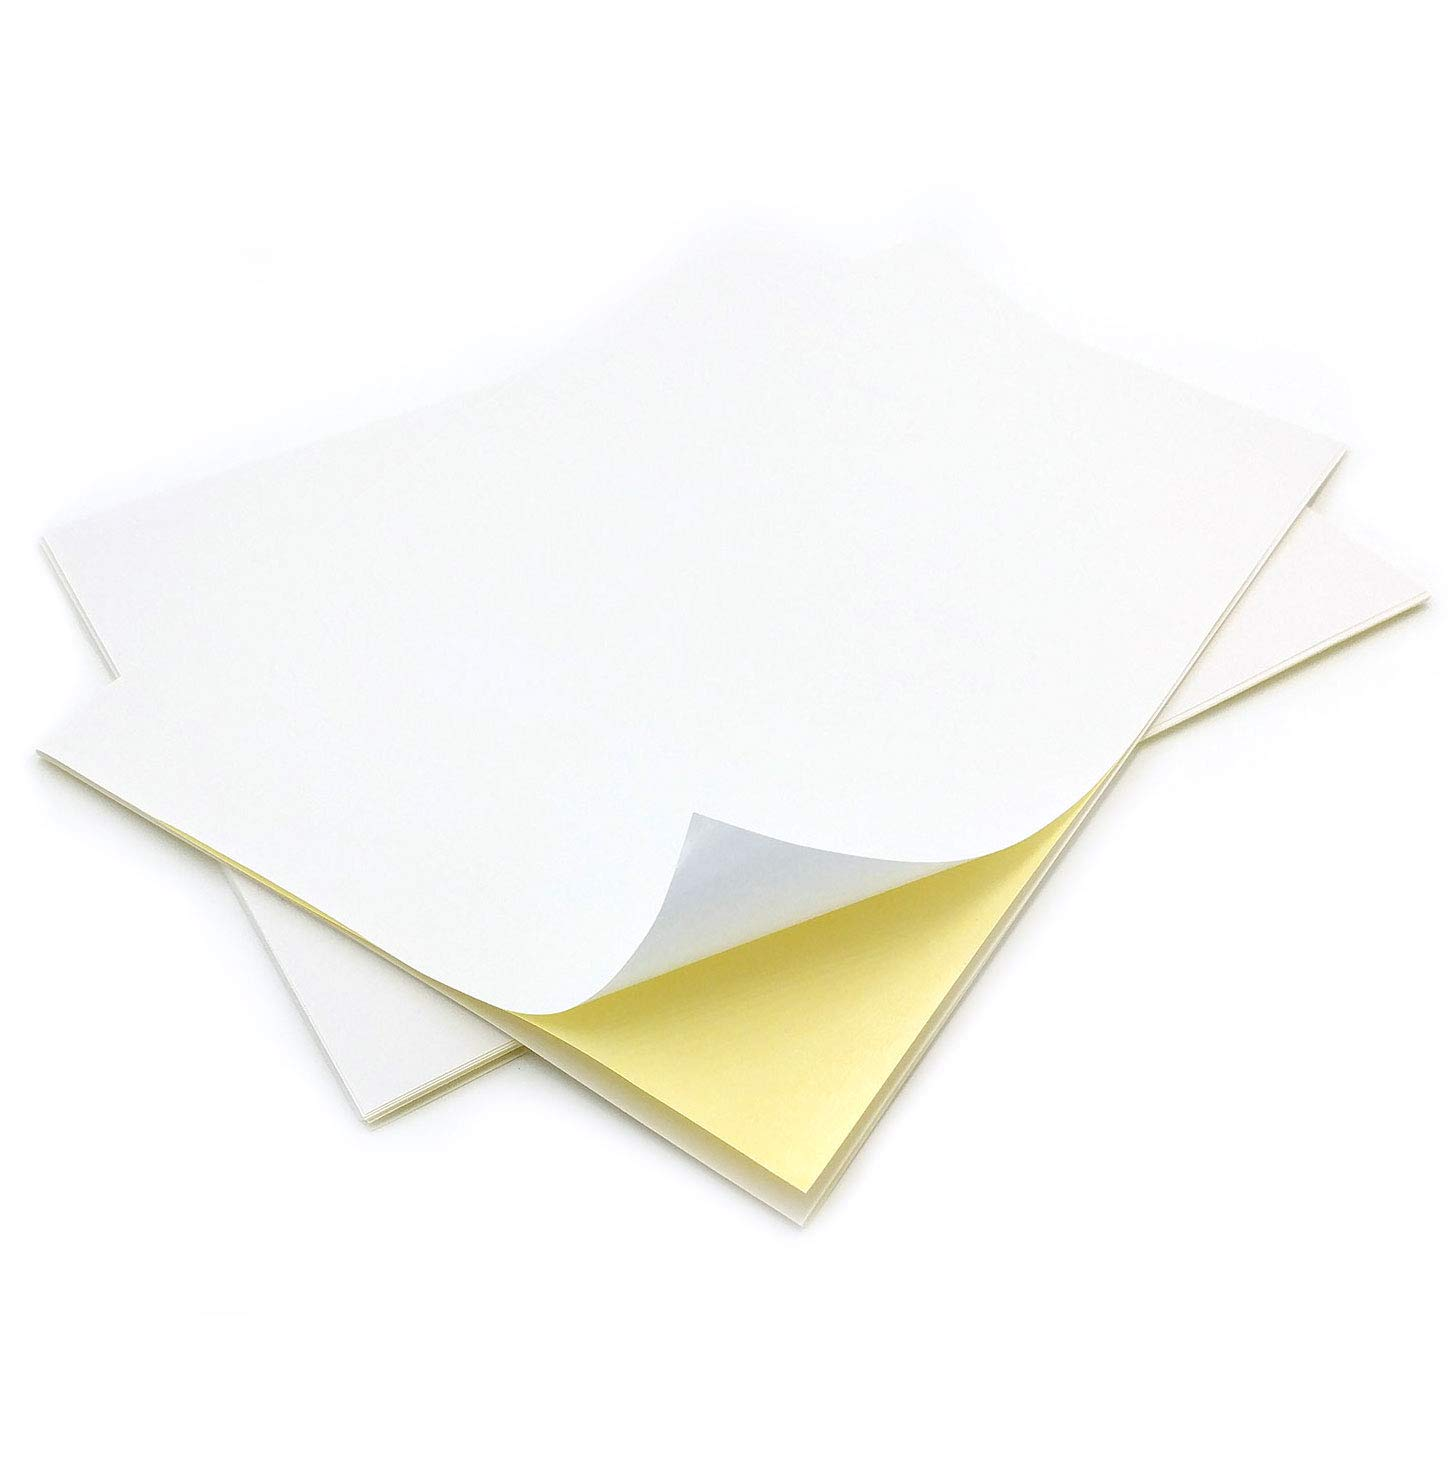 10 Sheets of Quality A4 White MATTE Self Adhesive / Sticky Back Label Printing Paper Sheet Evergreen Goods